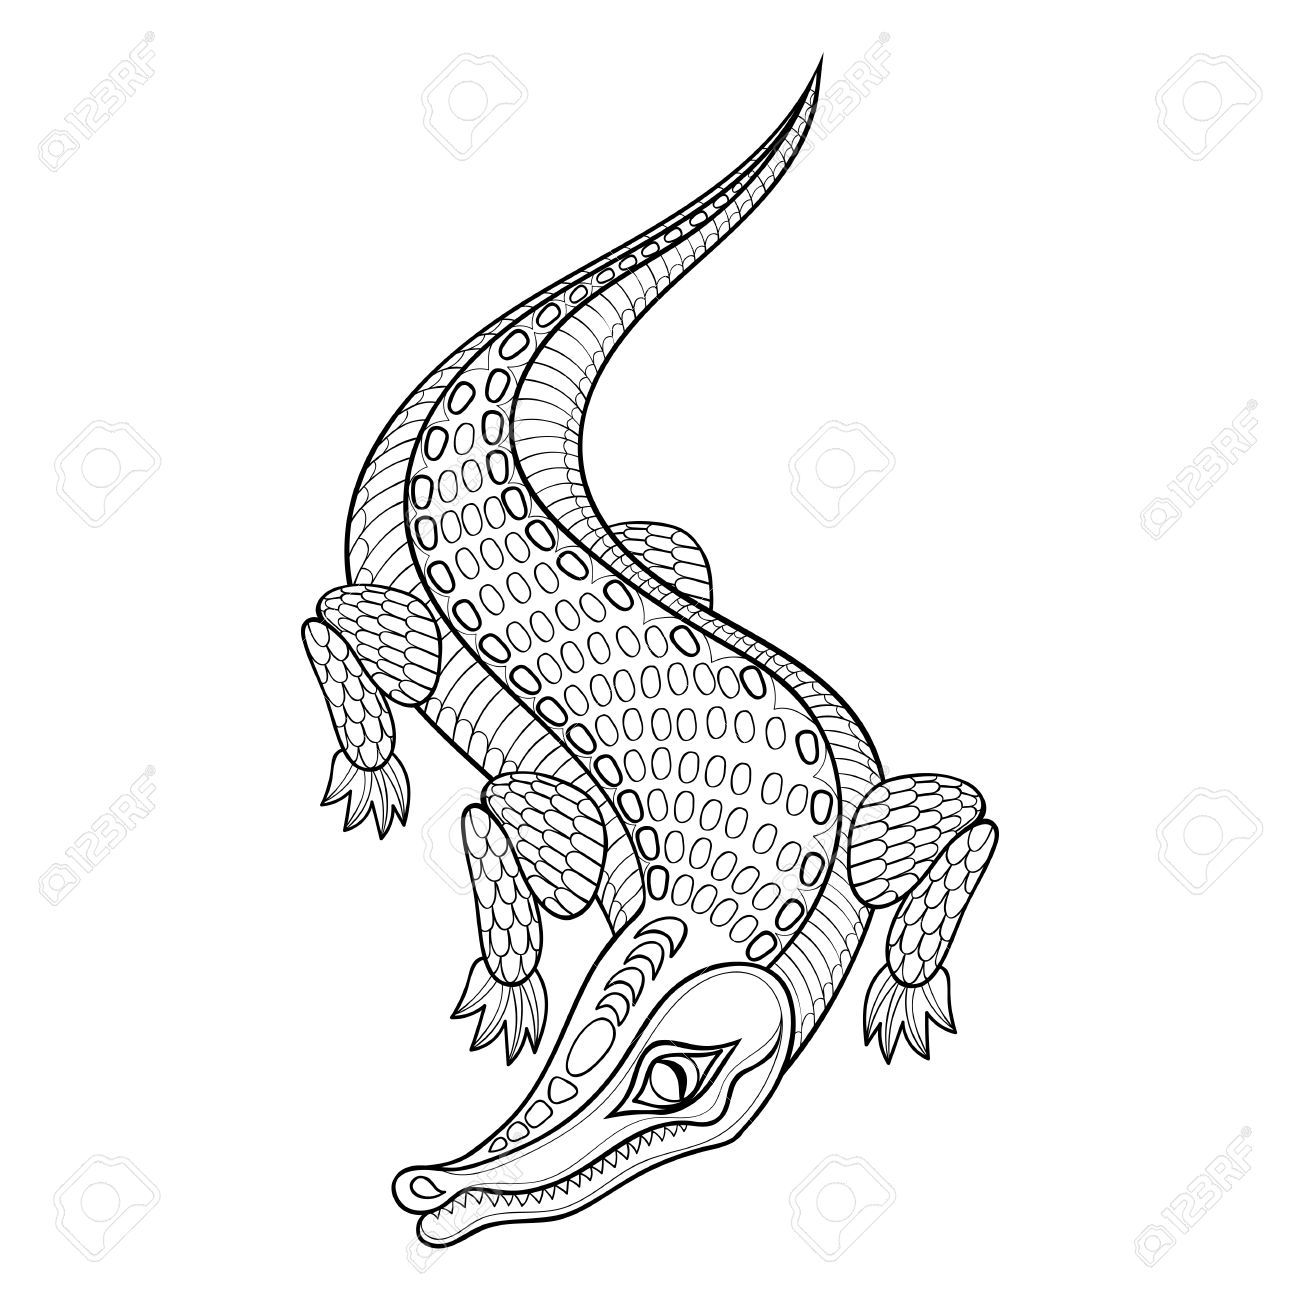 Hand Drawn Zentangled Crocodile For Adult Coloring Pages In Doodle Adult Coloring Pages How To Draw Hands Adult Coloring